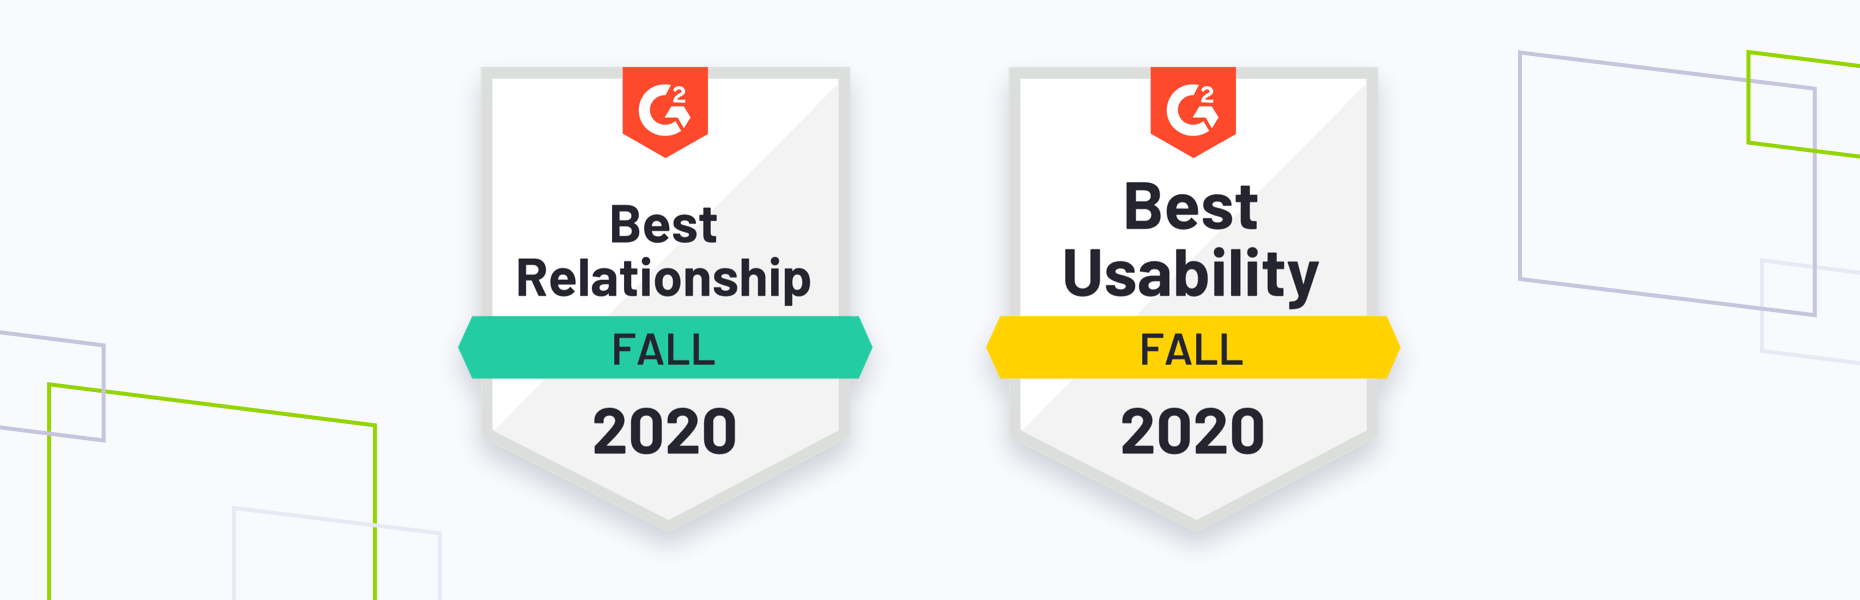 G2 Fall 2020 badges with brand shapes